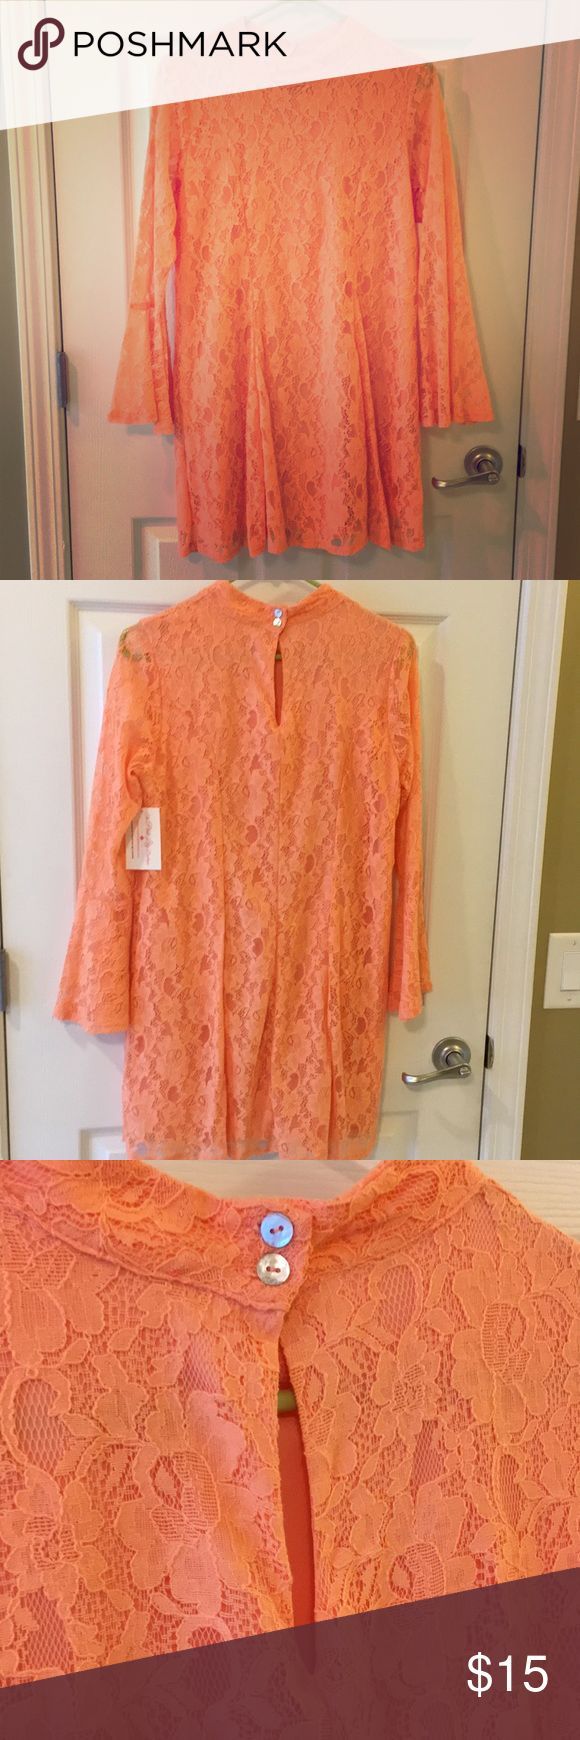 Red Dress Boutique Lace Dress Beautiful Coral Dress Never Worn With Tags! Peach Love California Dresses Long Sleeve